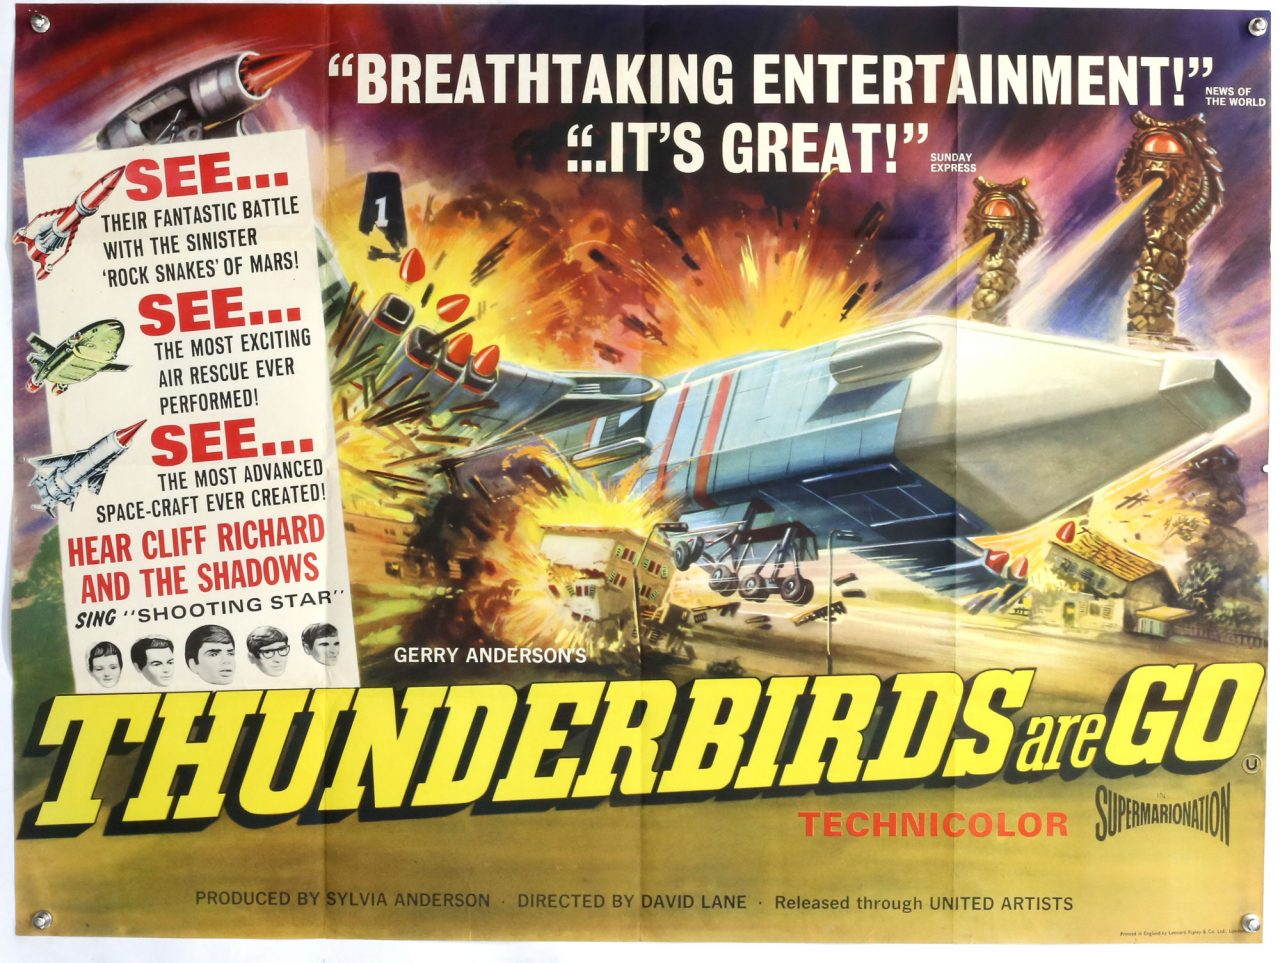 https://www.artsandcollections.com/wp-content/uploads/2020/09/Thunderbirds-Are-Go-1280x963.jpg